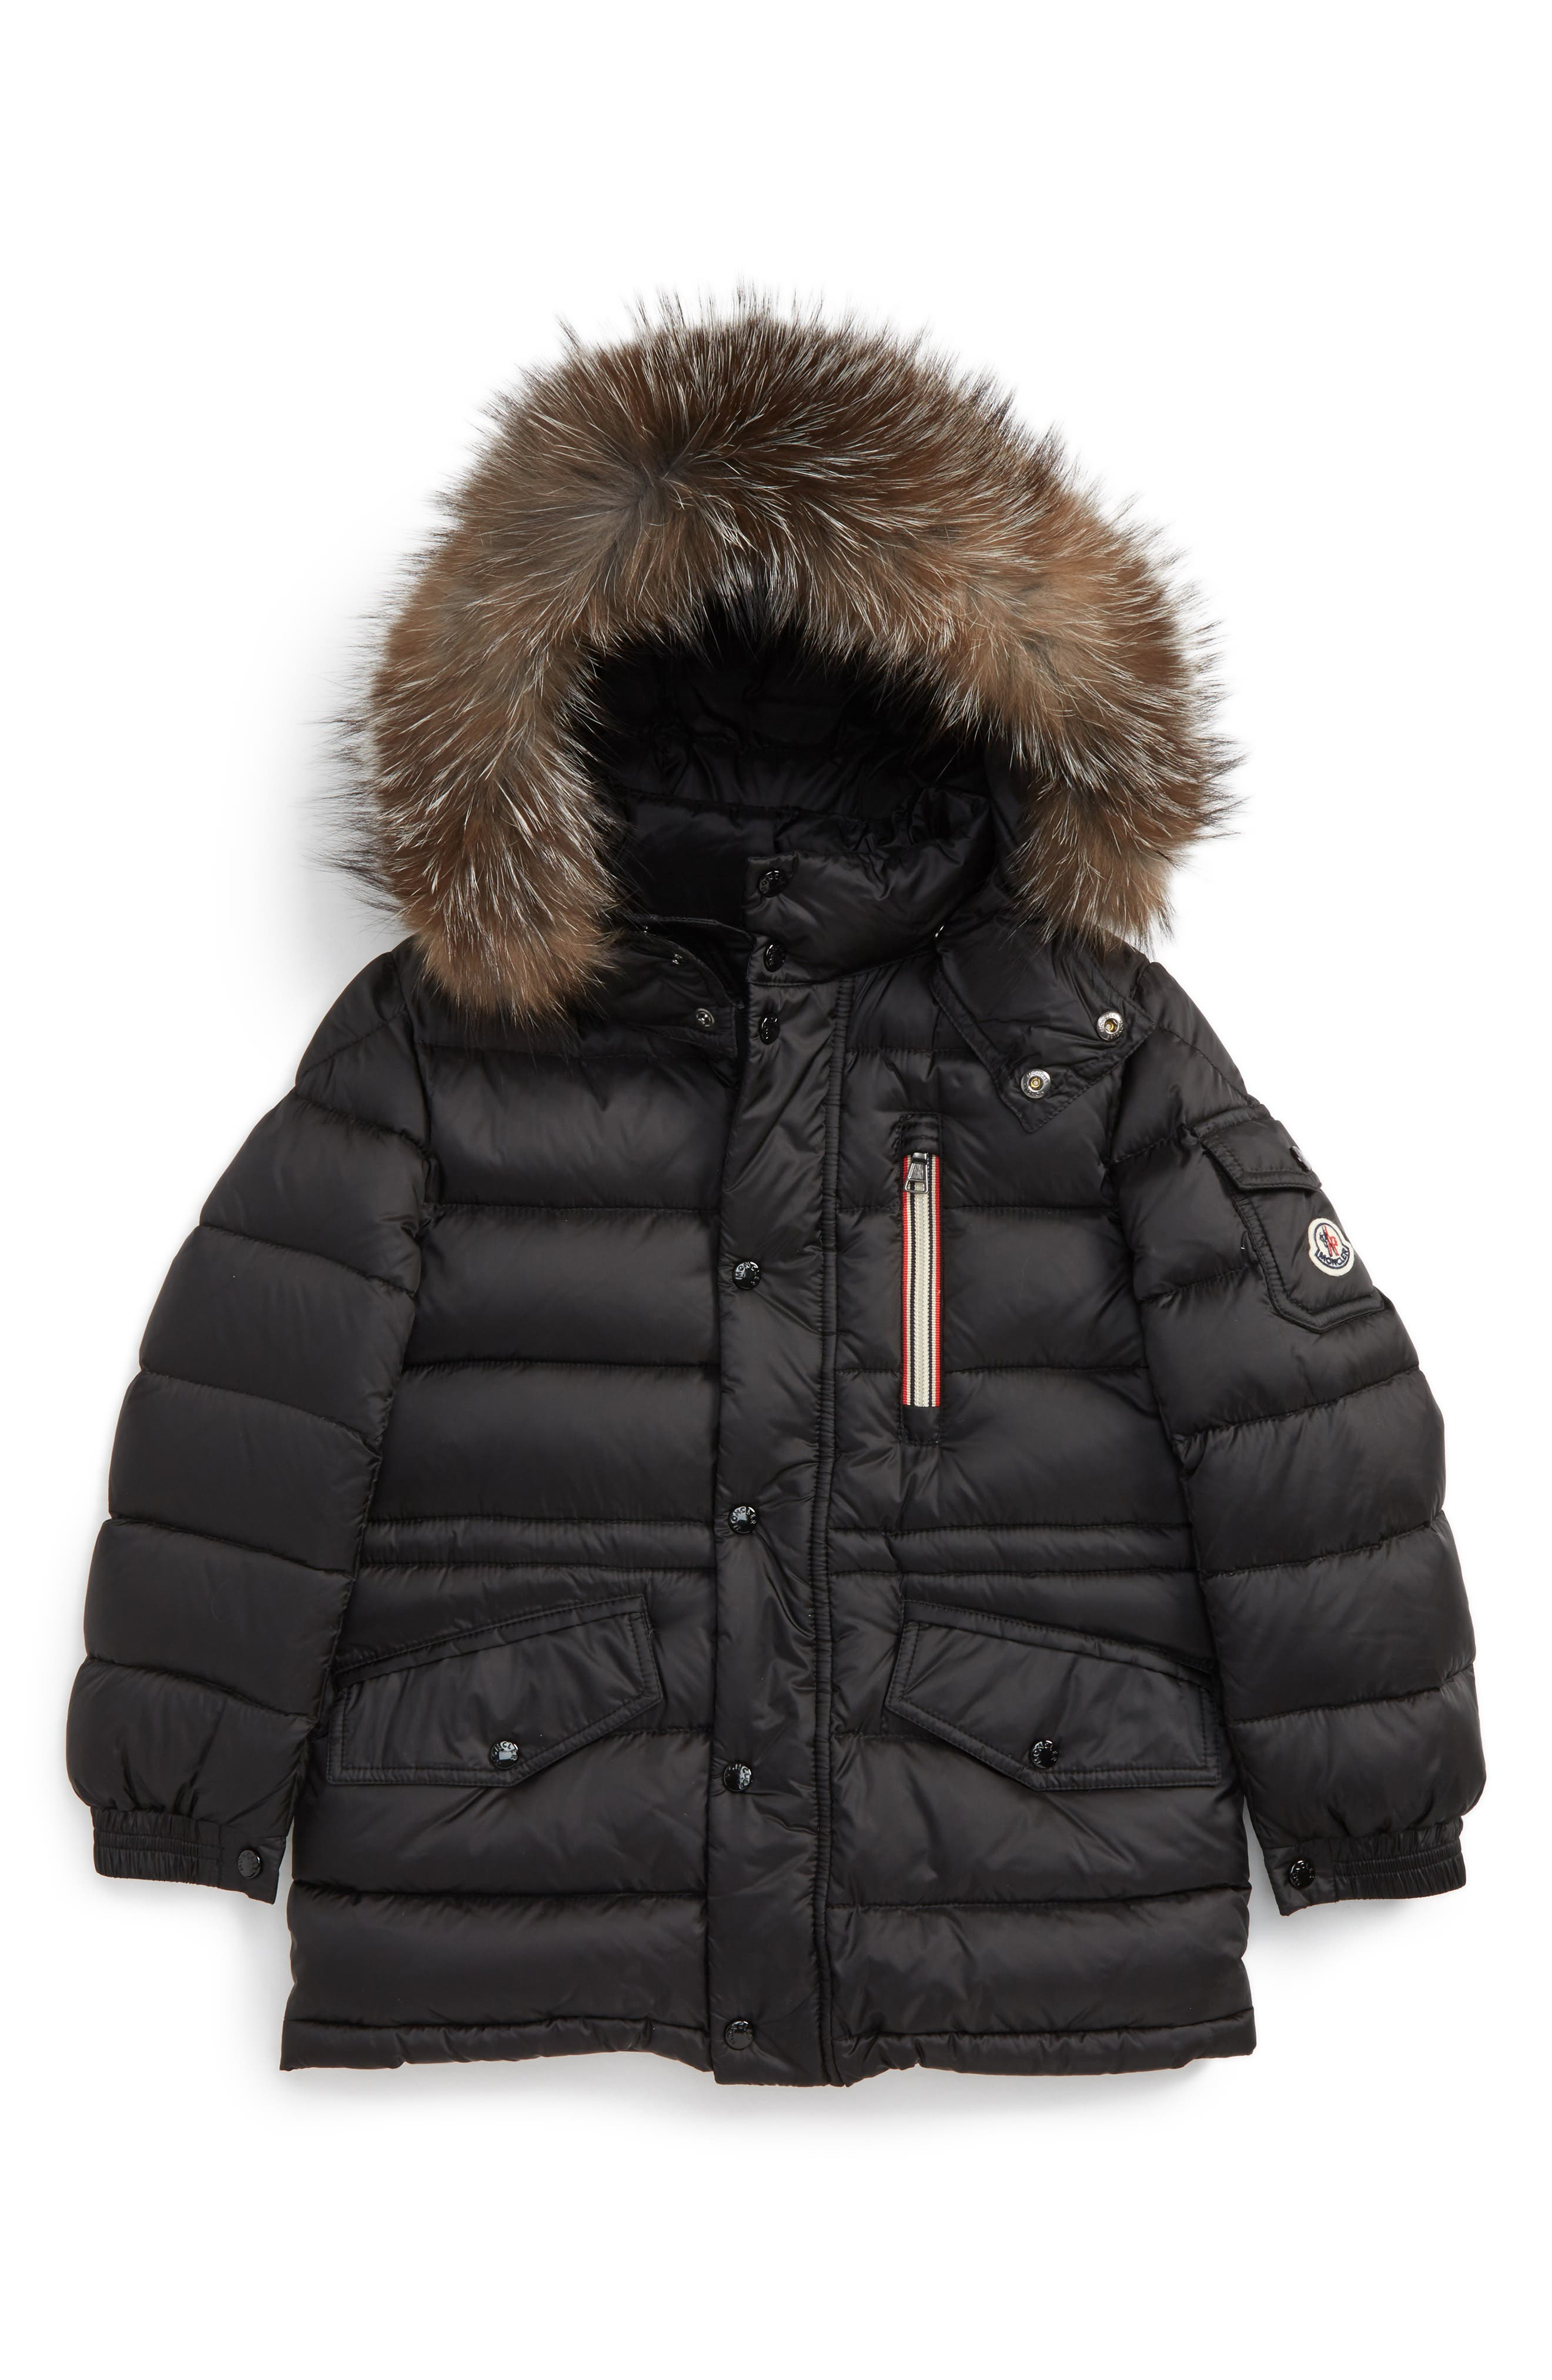 Main Image - Moncler Lilian Water Resistant Down Parka with Genuine Fox Fur Trim (Little Girls & Big Girls)